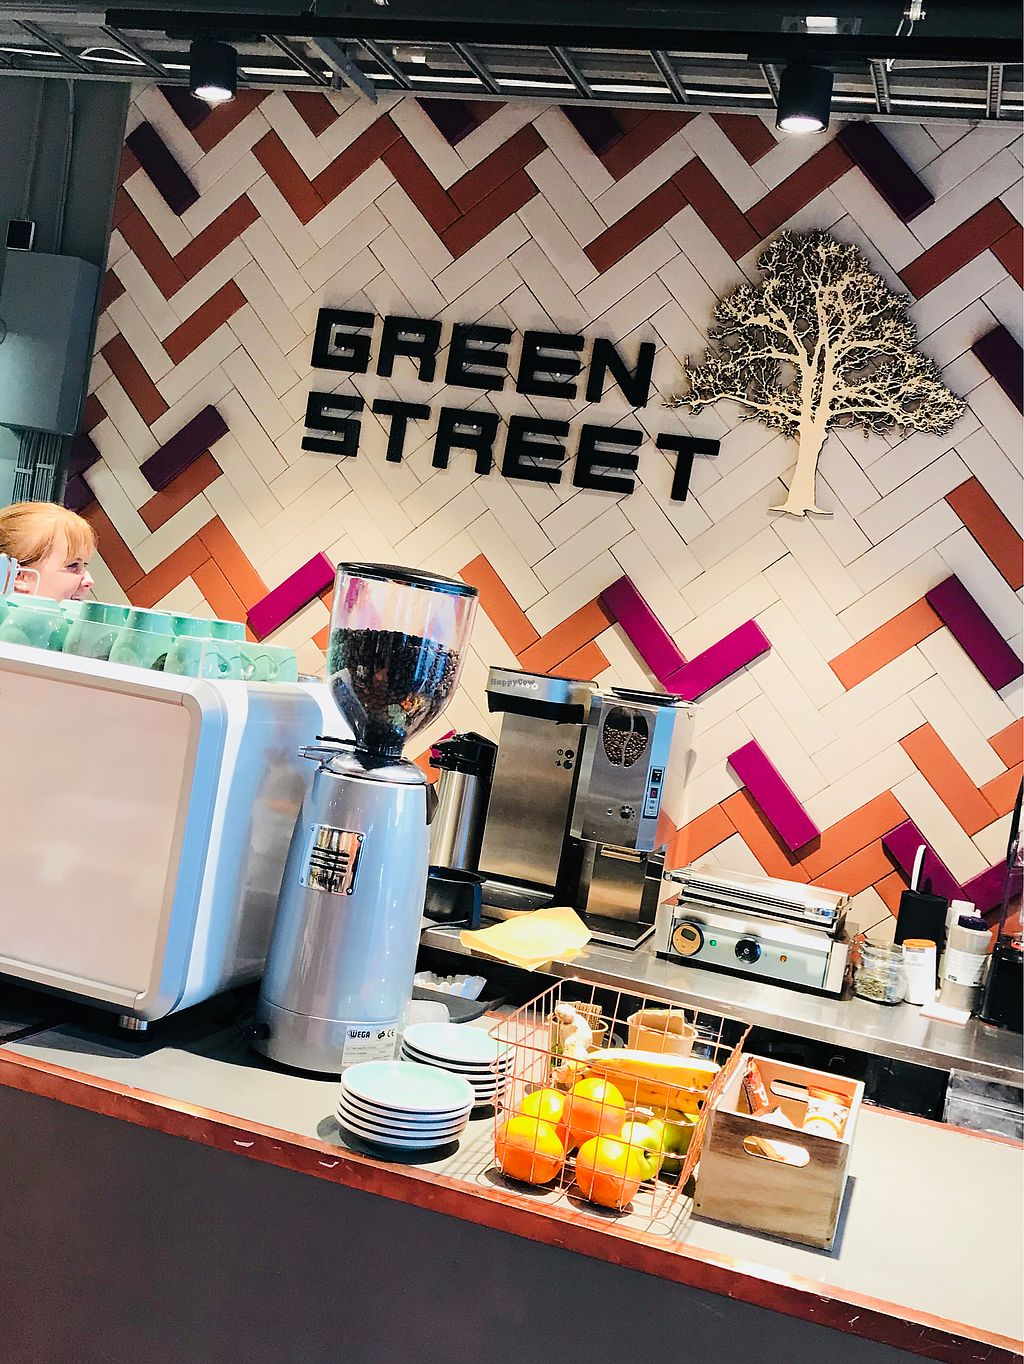 """Photo of GreenStreet  by <a href=""""/members/profile/doctorjay"""">doctorjay</a> <br/>Green Street <br/> February 9, 2018  - <a href='/contact/abuse/image/108564/356765'>Report</a>"""